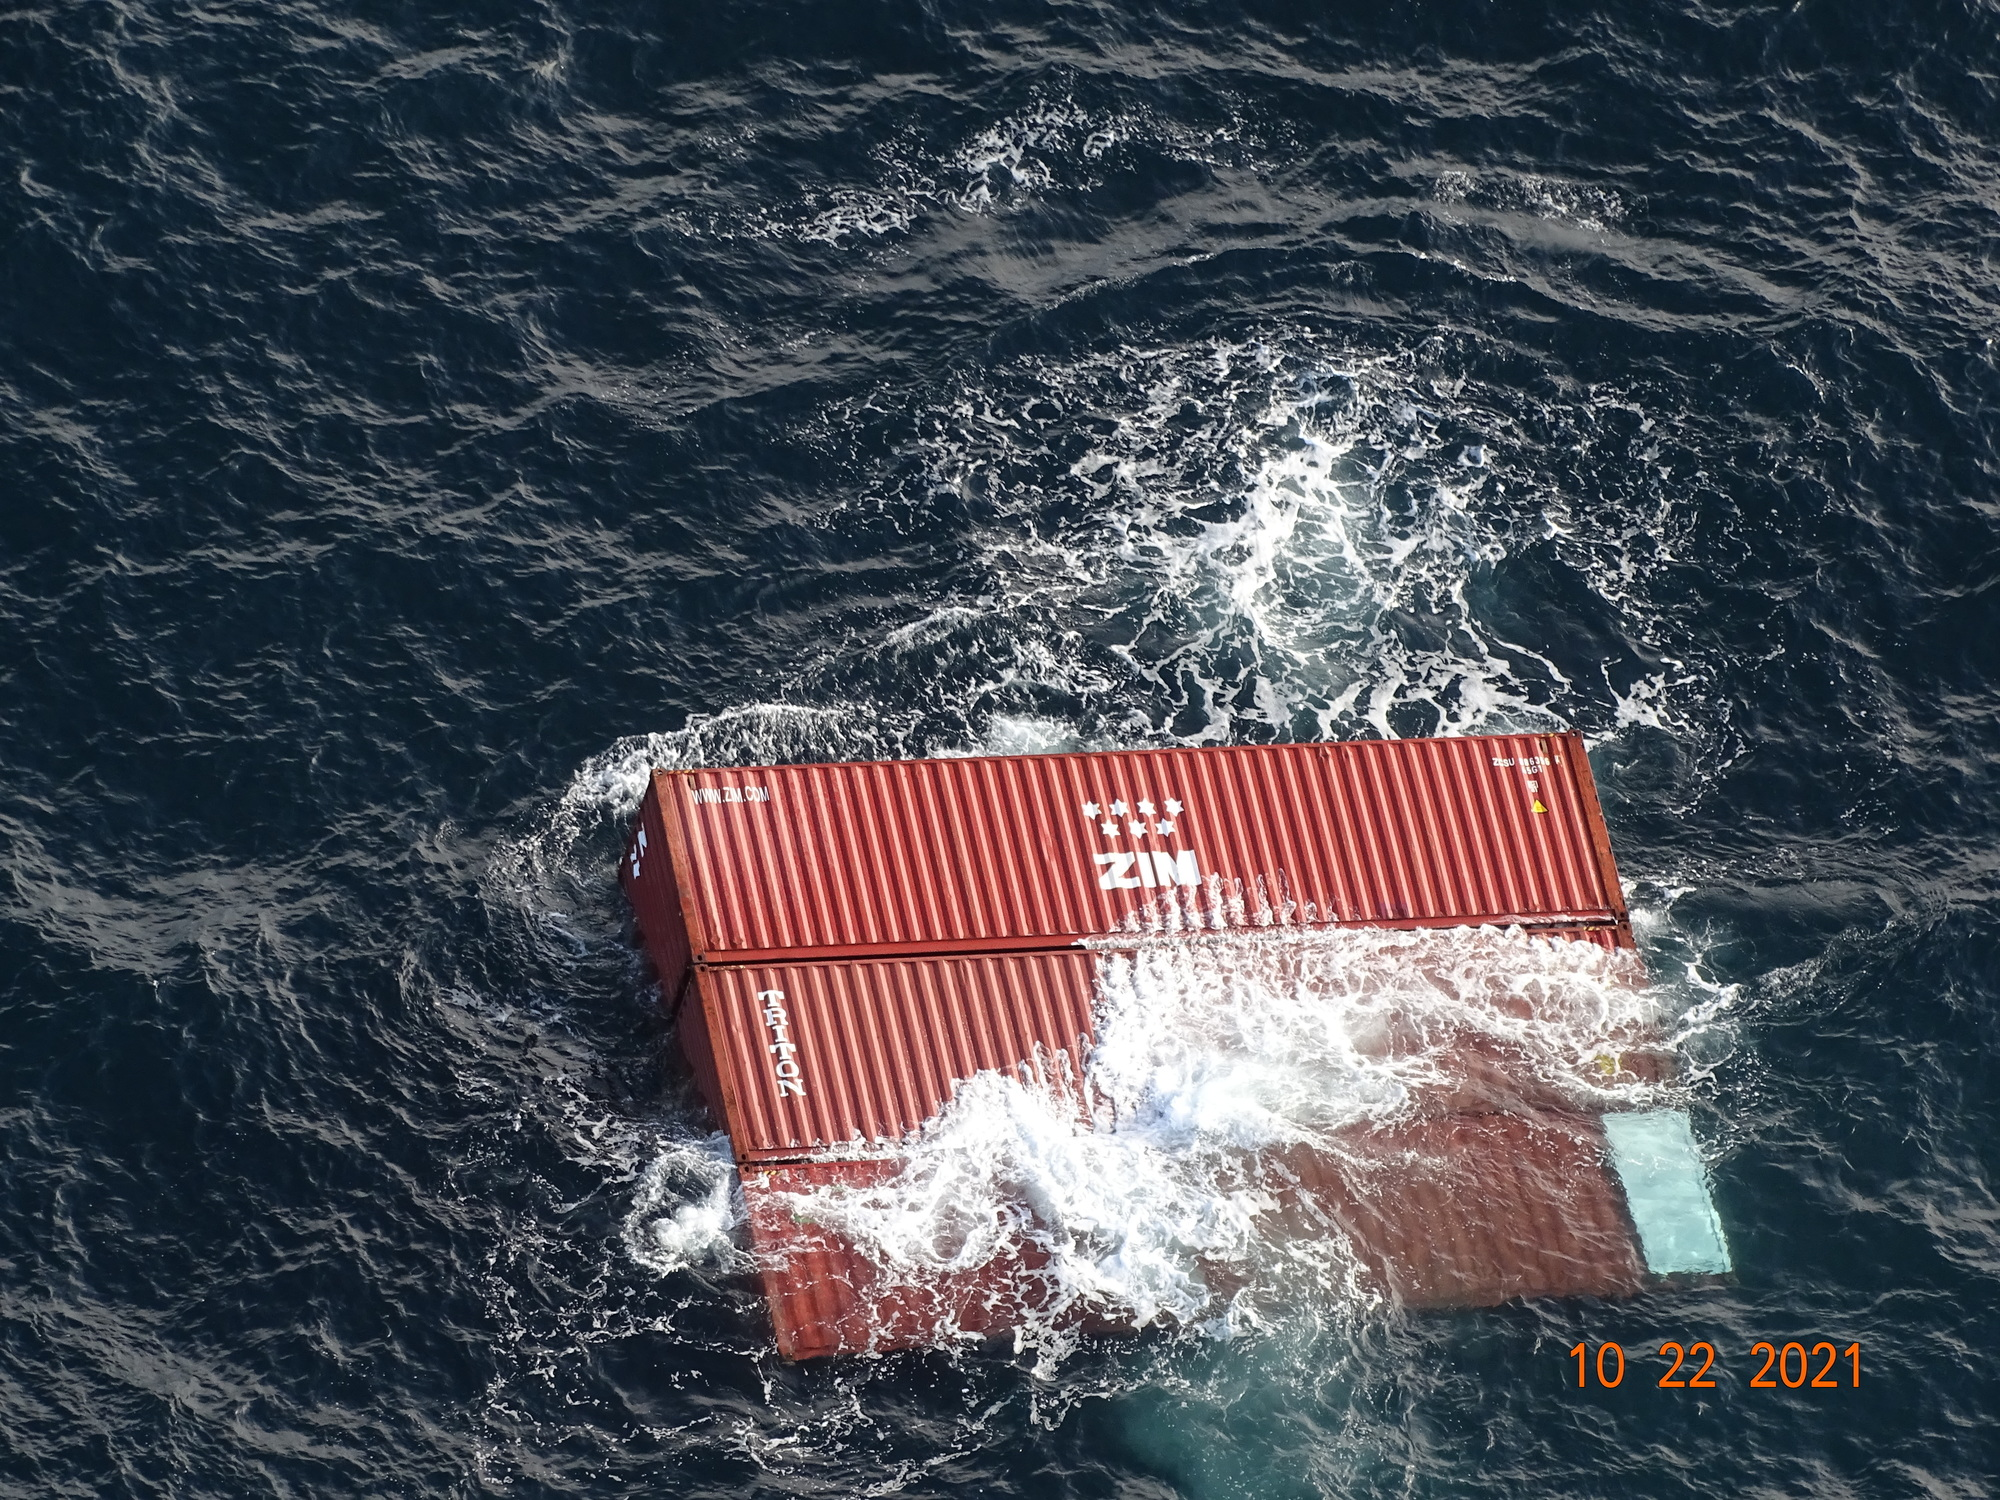 U.S., Canadian Coast Guard responds to container ship losing 40 containers in Strait of Juan de Fuca